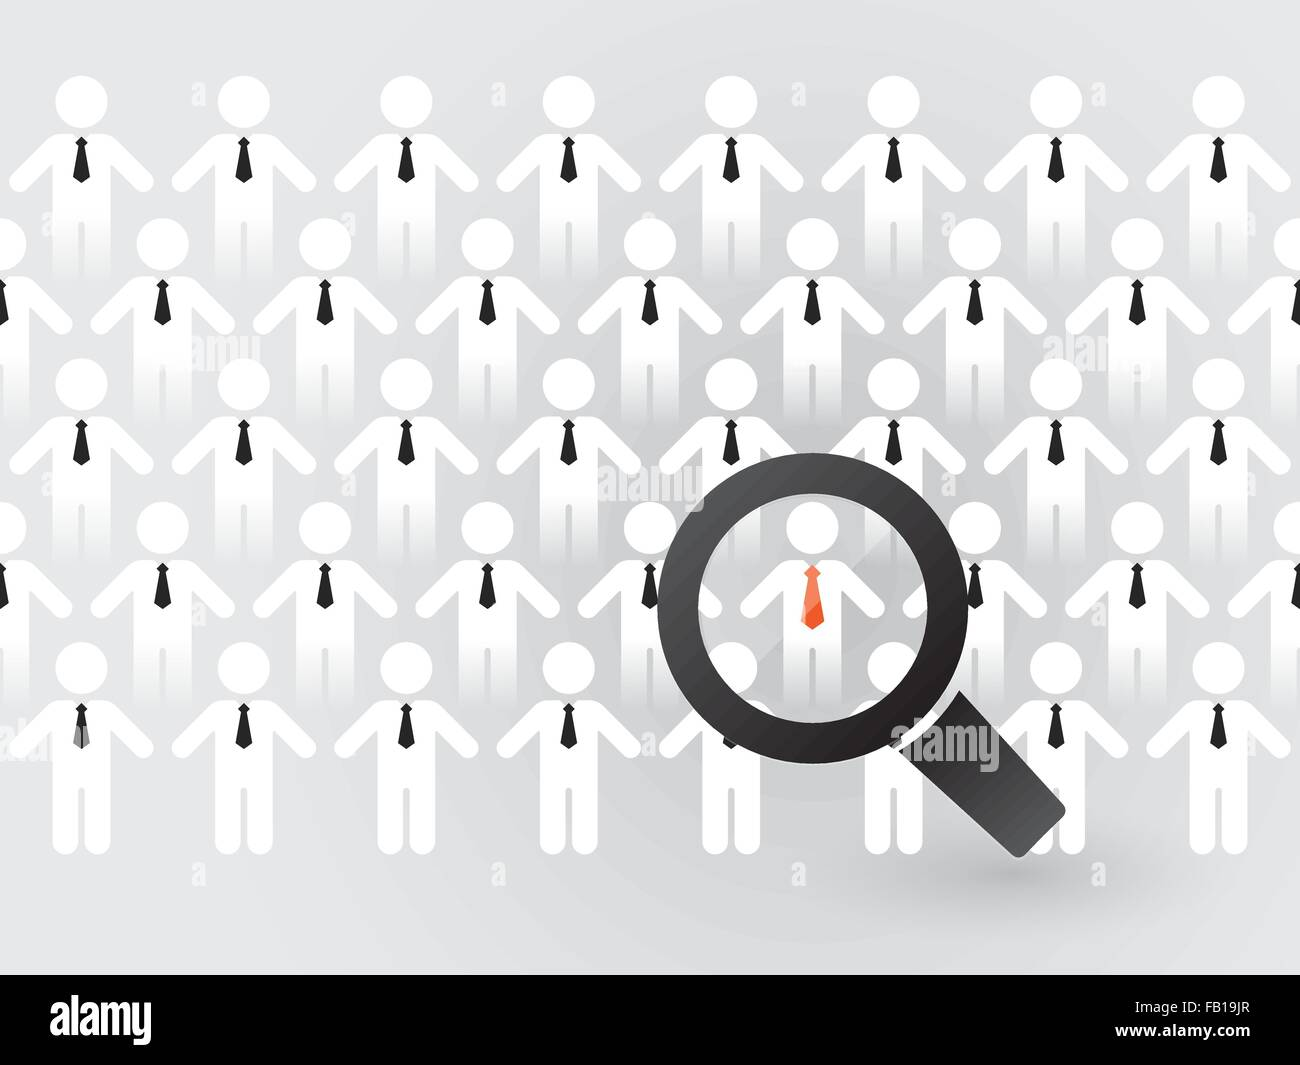 search for suitable employees - Stock Vector